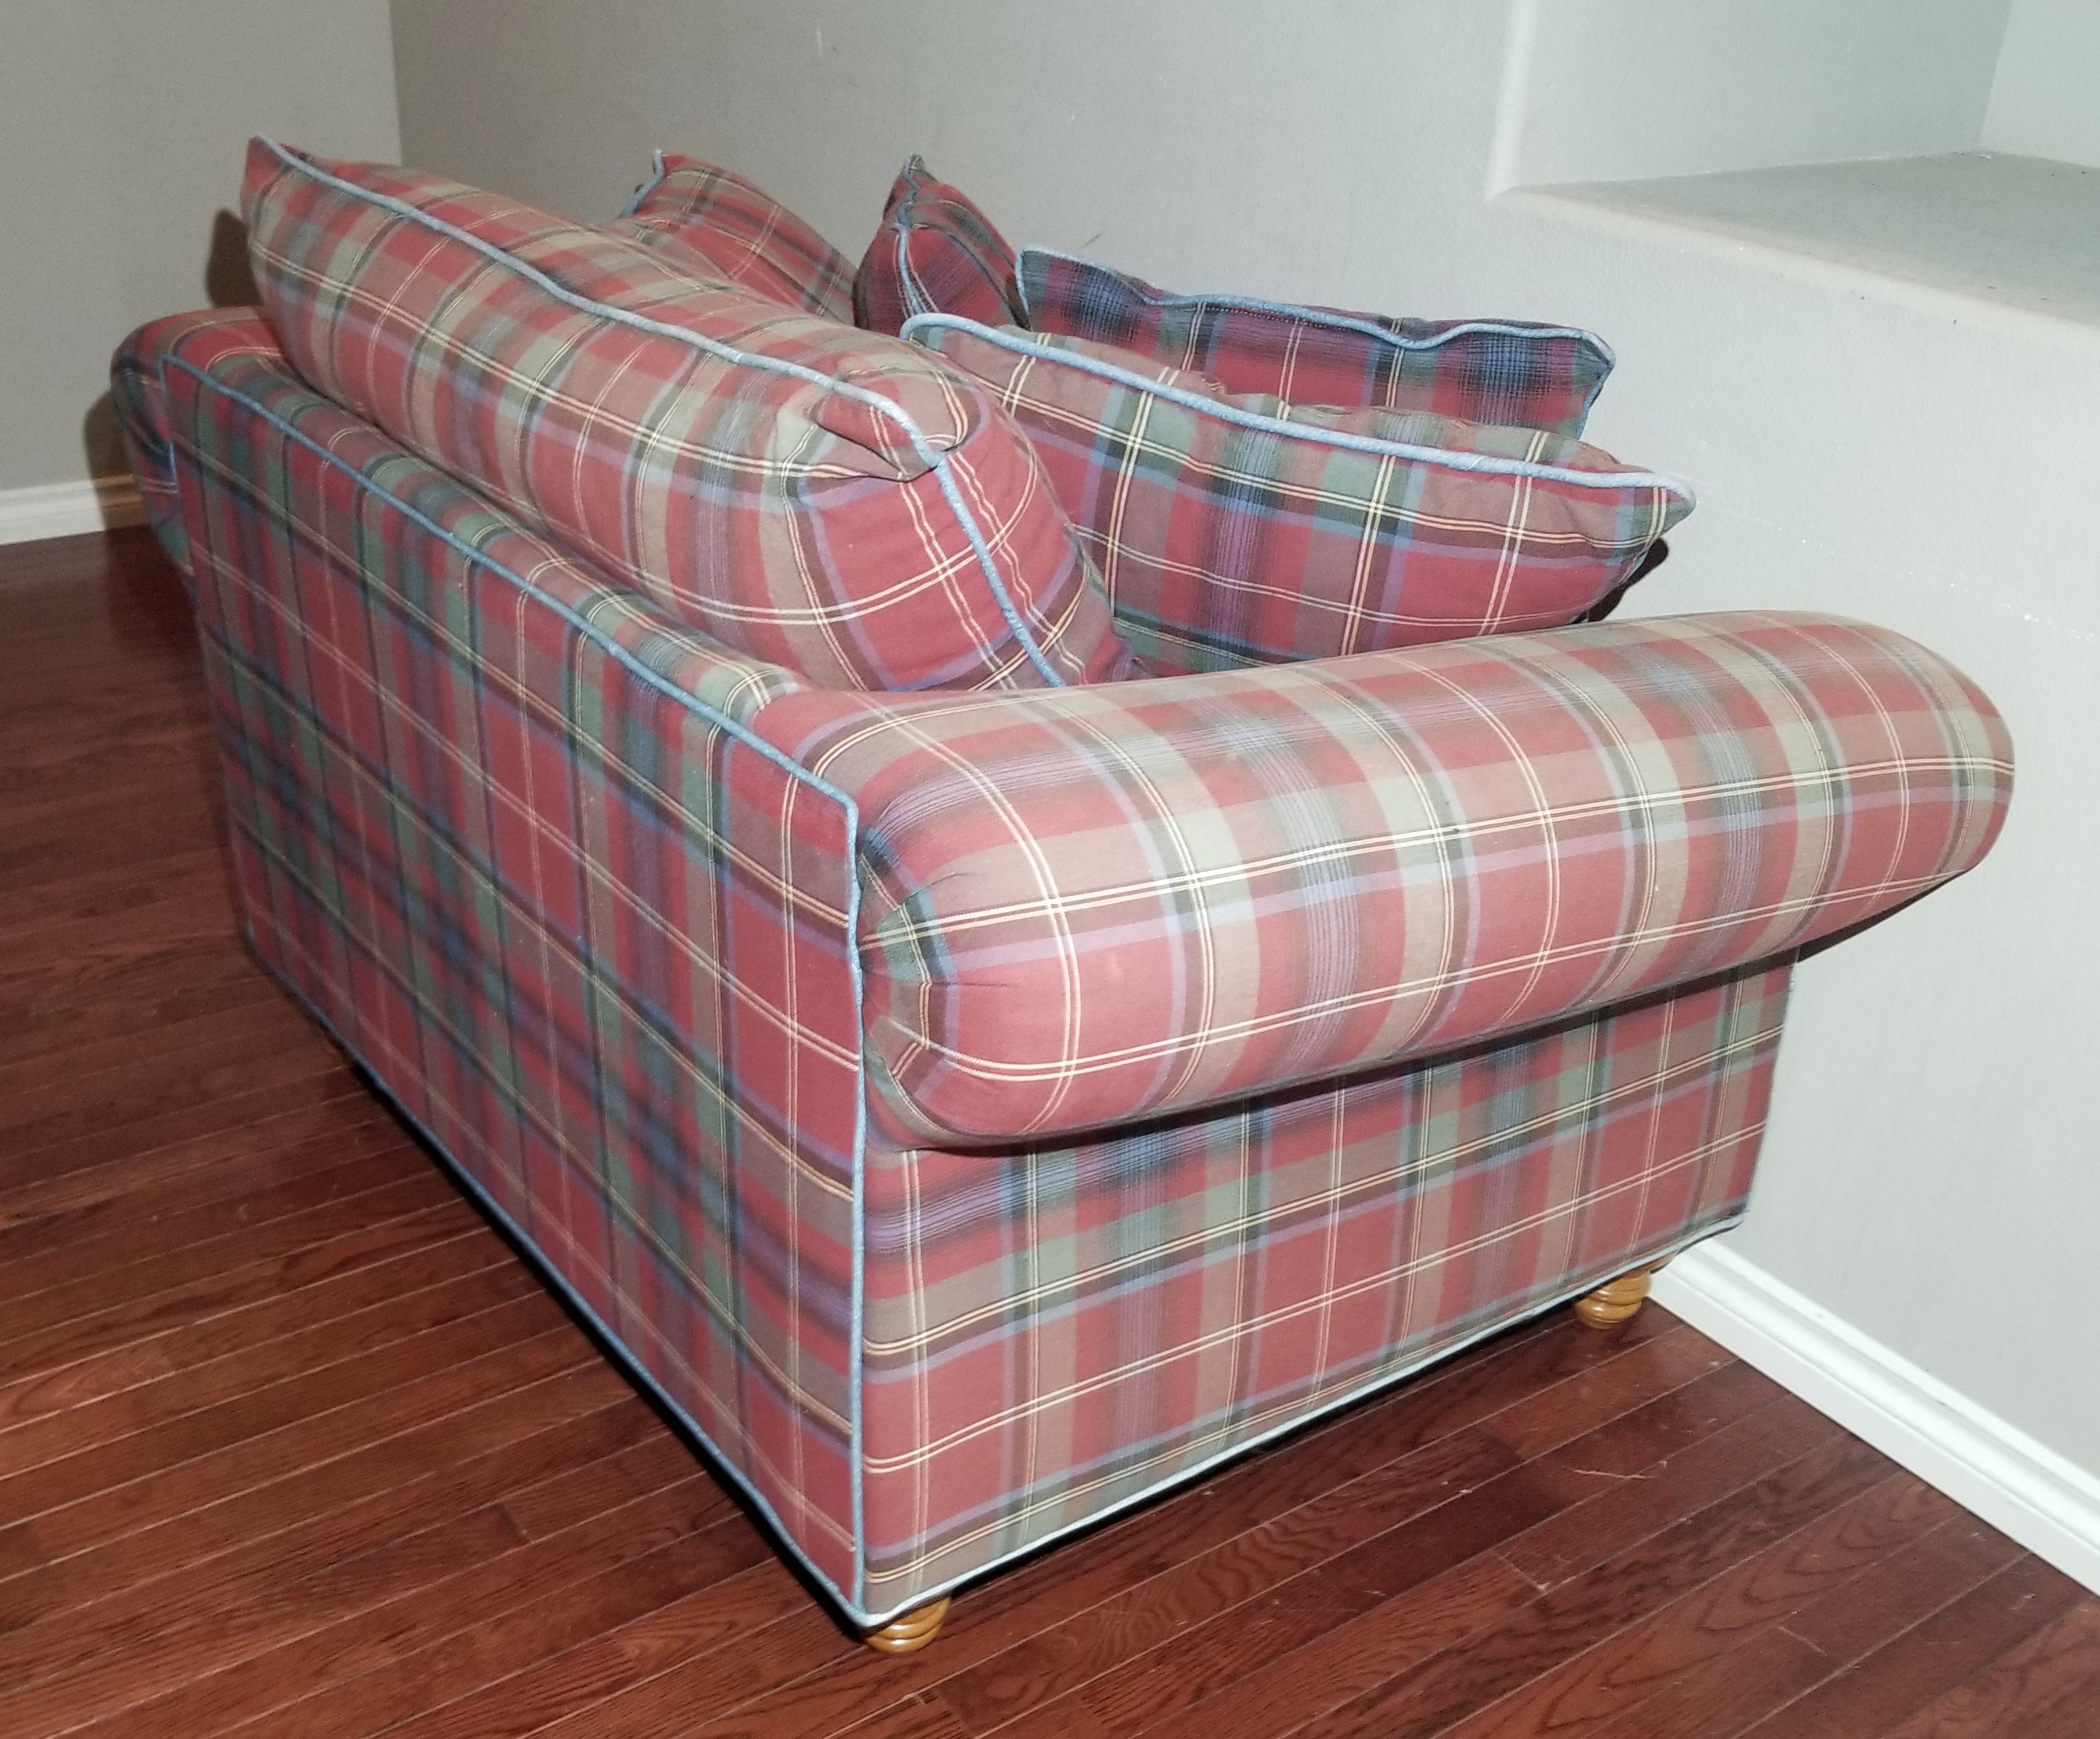 Enjoyable Cha26 Red Green Plaid Mix Polyester Oversized Armchair And Matching Ottoman Inzonedesignstudio Interior Chair Design Inzonedesignstudiocom